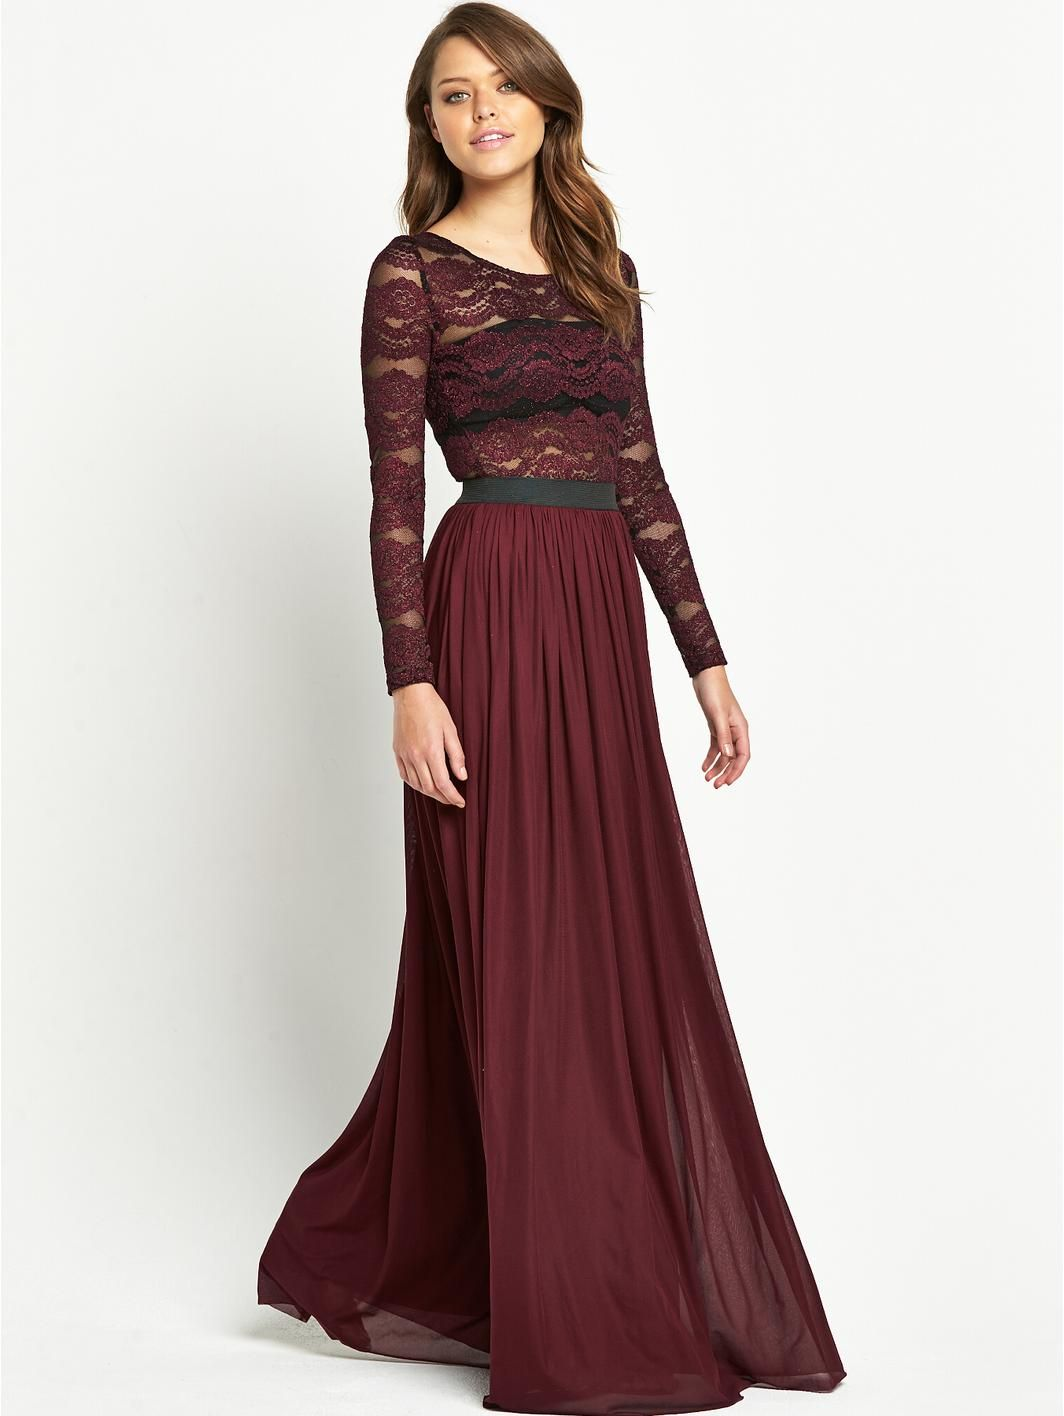 Lace top maxi dress httplittlewoodsrare lace top maxi lace top maxi dress httplittlewoodsrare ombrellifo Image collections